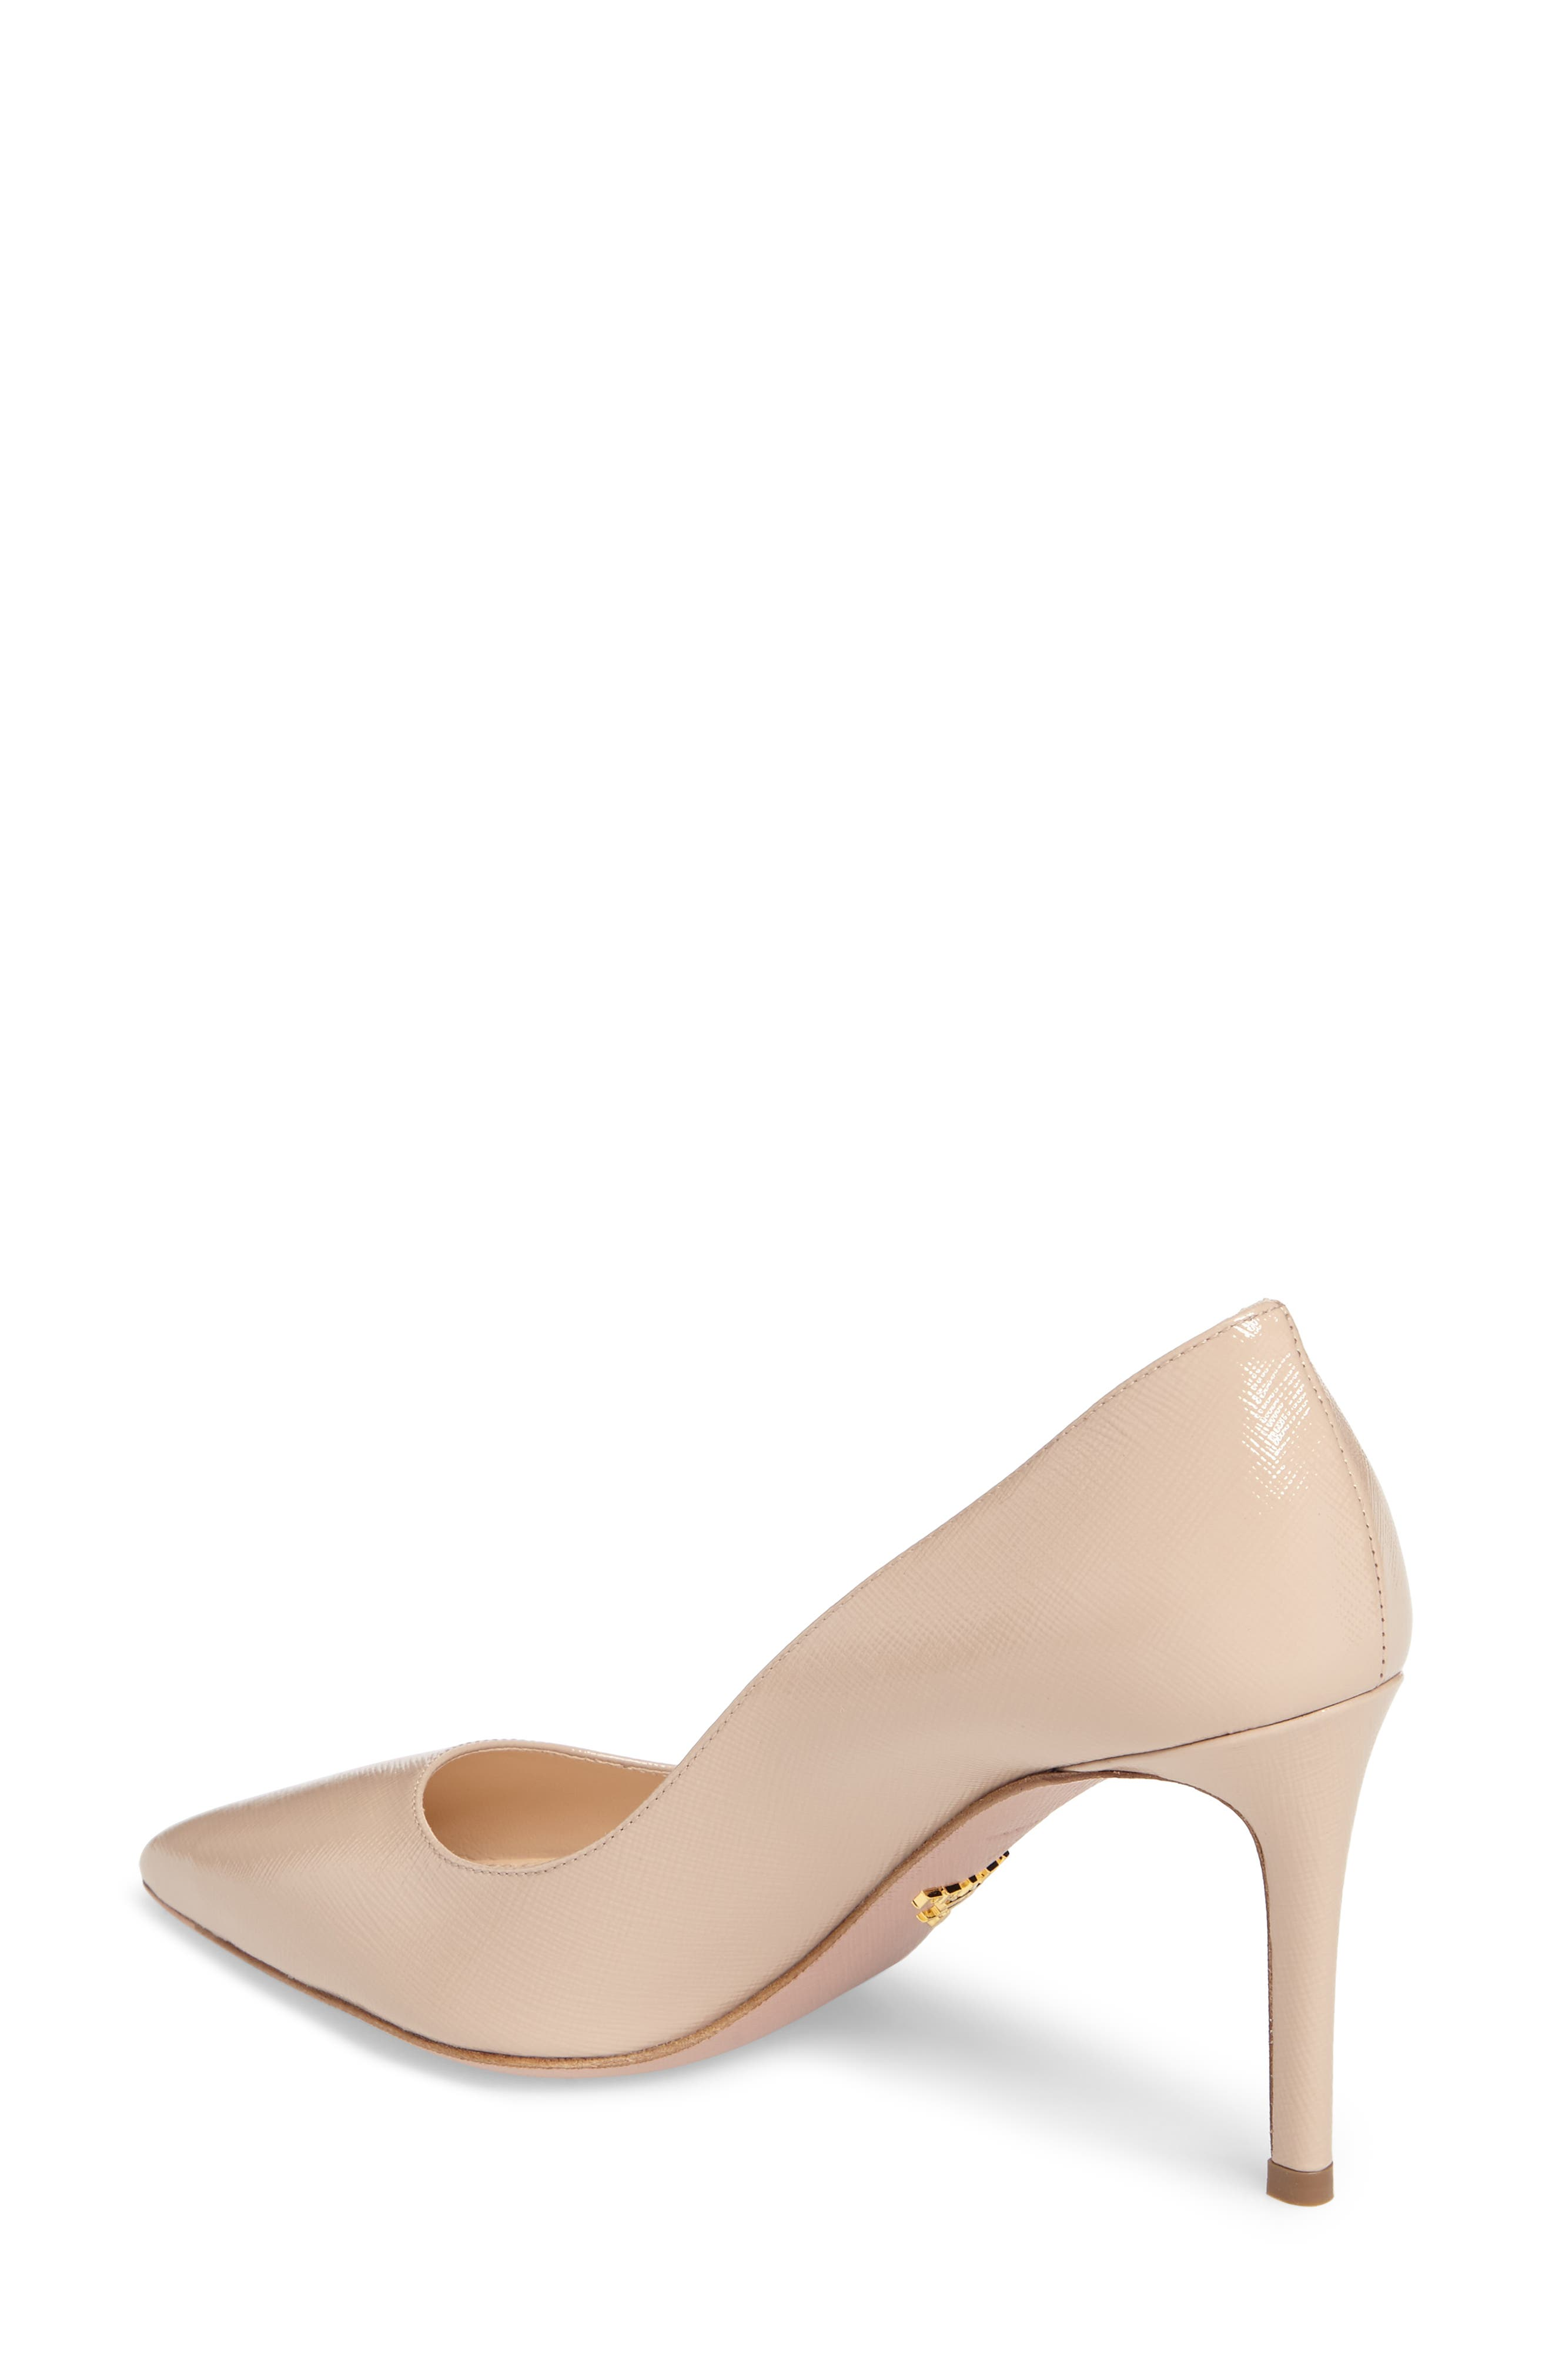 Pointy Toe Pump,                             Alternate thumbnail 2, color,                             Cipria